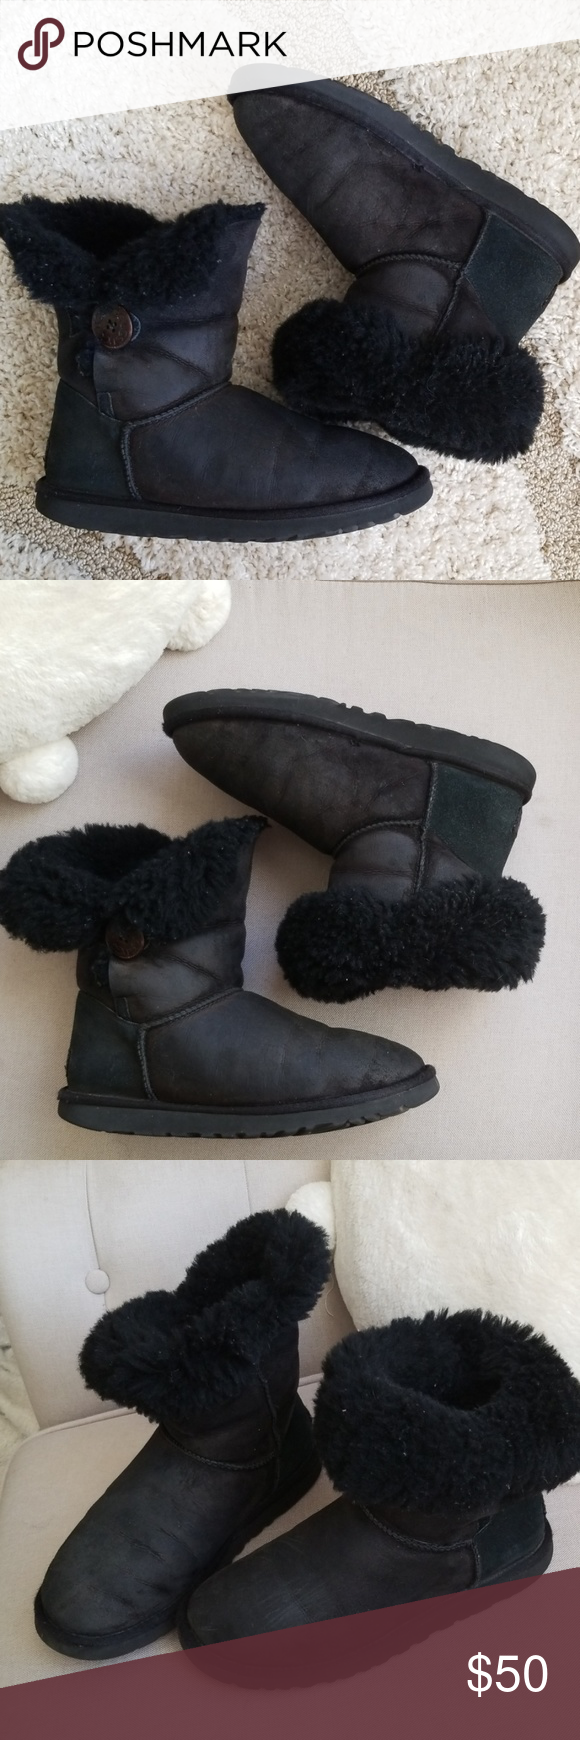 UGG boots size 6 girls 7.5 8 womens Preowned good condition black short uggs boots sheepskin size 6 in youth or 7.5 -8 women UGG Shoes Boots #uggbootsoutfitblackgirl